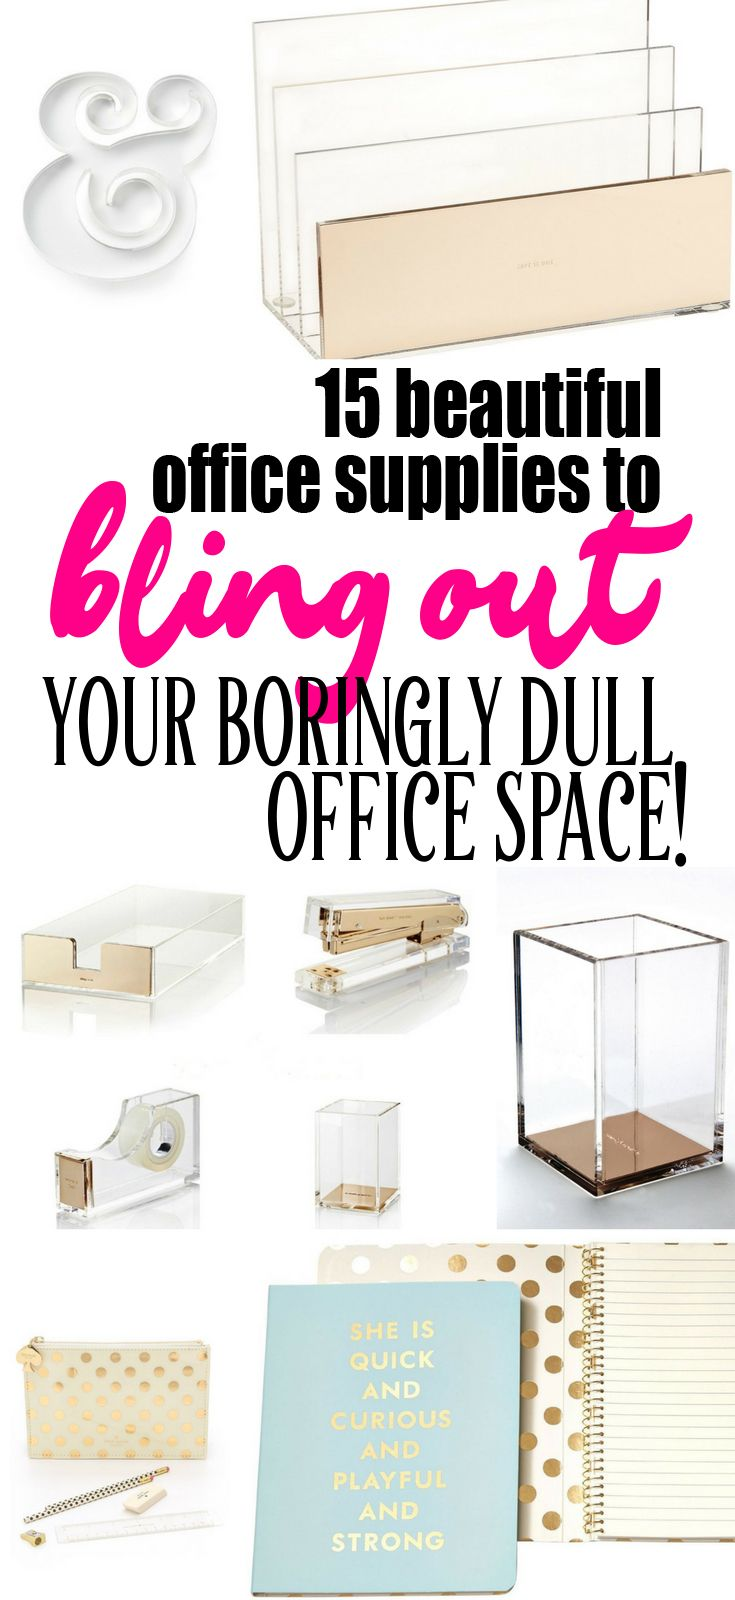 I M Such A Er For Beautiful Things And When It Comes To The Home Office Lollipop Supplies Here Are 15 Of My Favorite